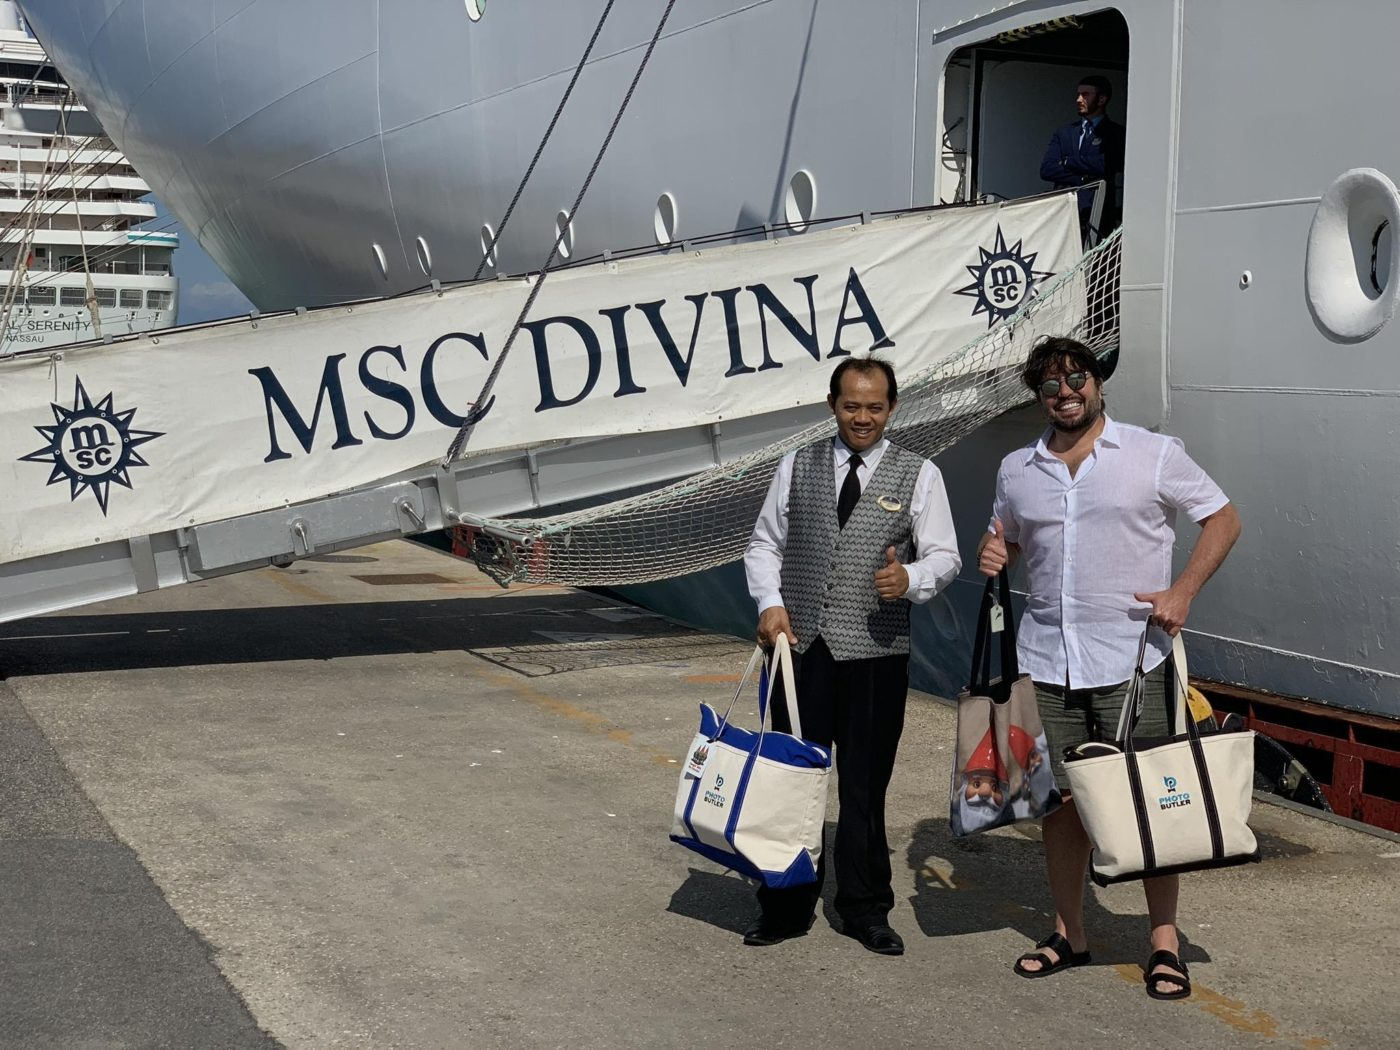 Andy on the MSC Divina